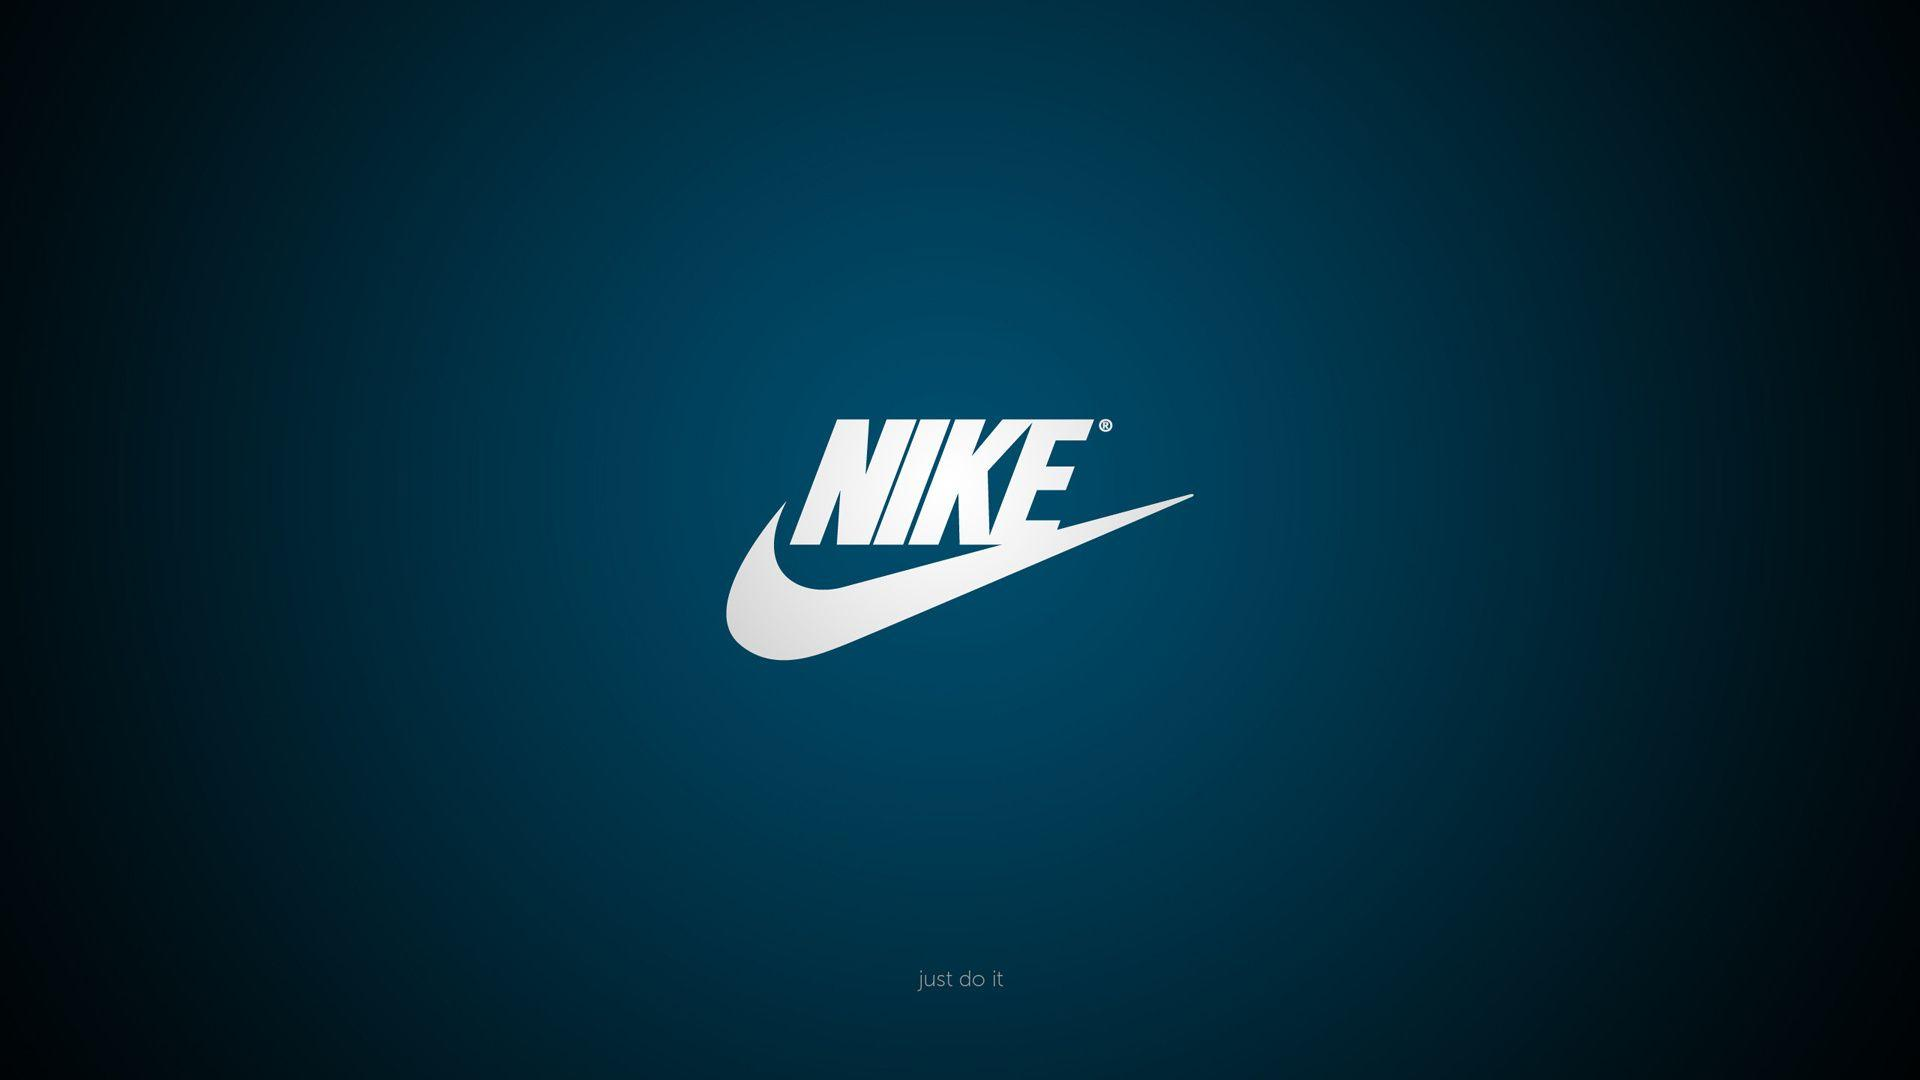 wallpaper nike signs - photo #5